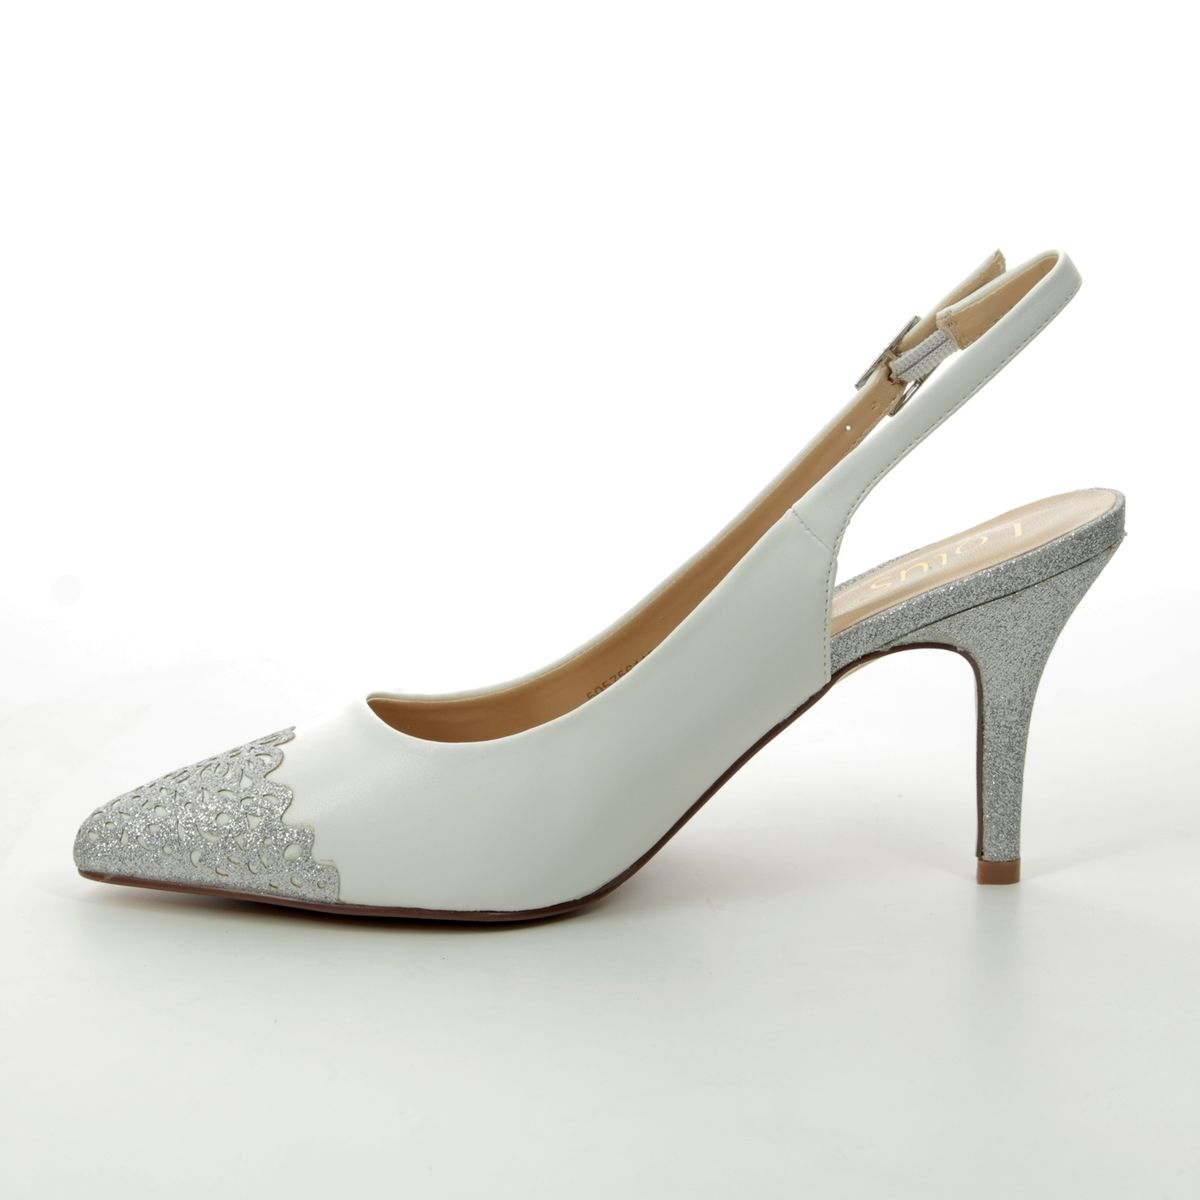 d722311044 Lotus High-heeled Shoes - White multi - ULS078/66 ARLIND